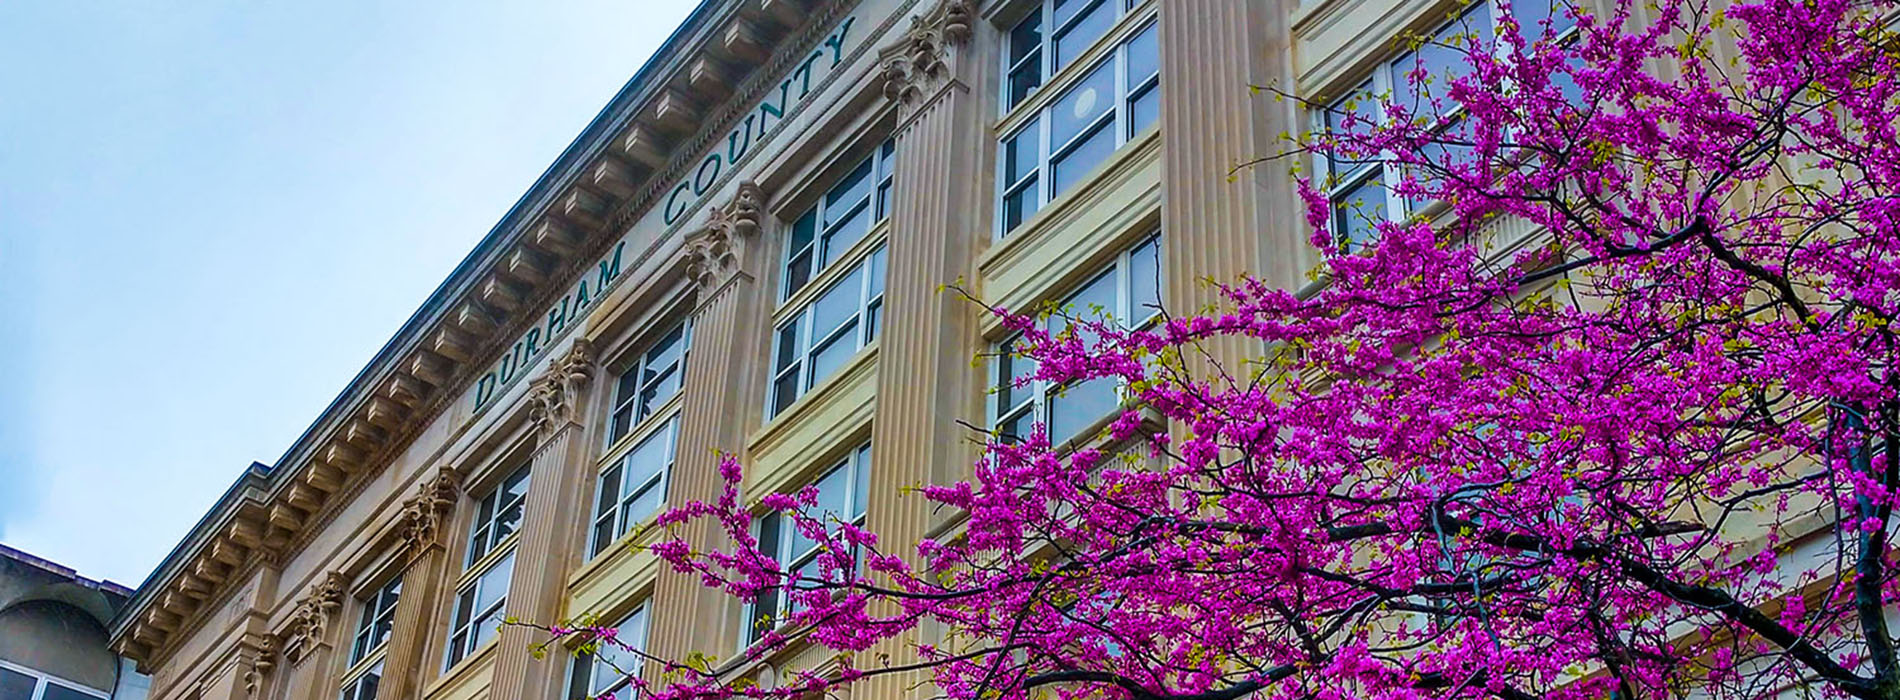 Front of Durham County Adminstration Building I with flowers in bloom